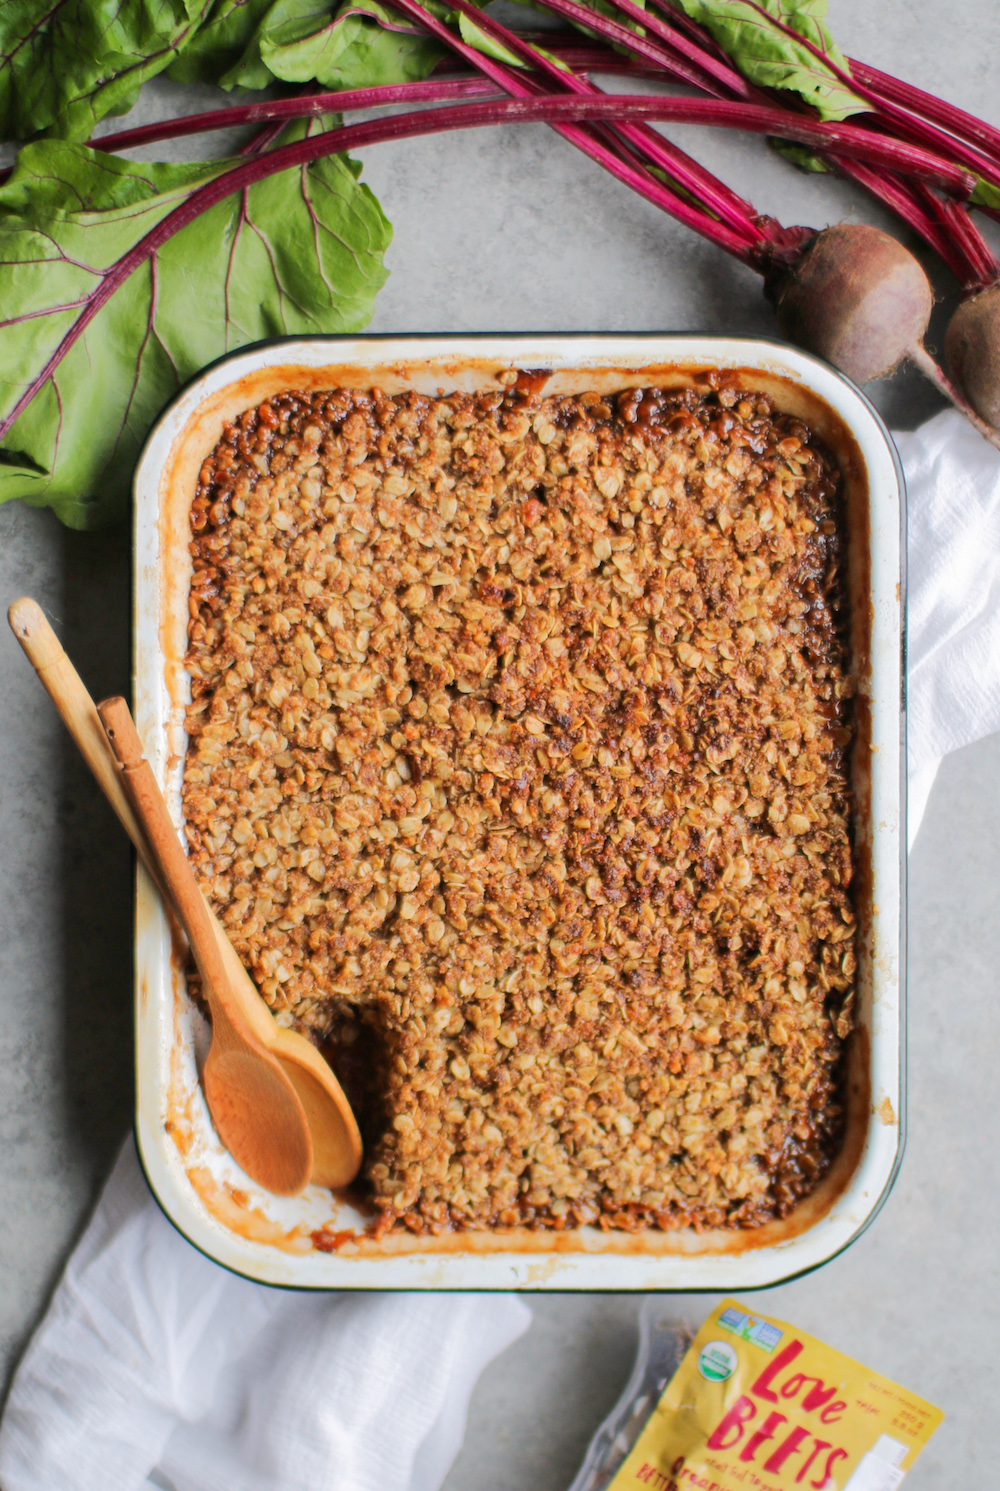 Vegan Beet Apple Crumble that is just perfect for the holiday season. It's also gluten free so all can enjoy this tasty vegan dessert.jpg